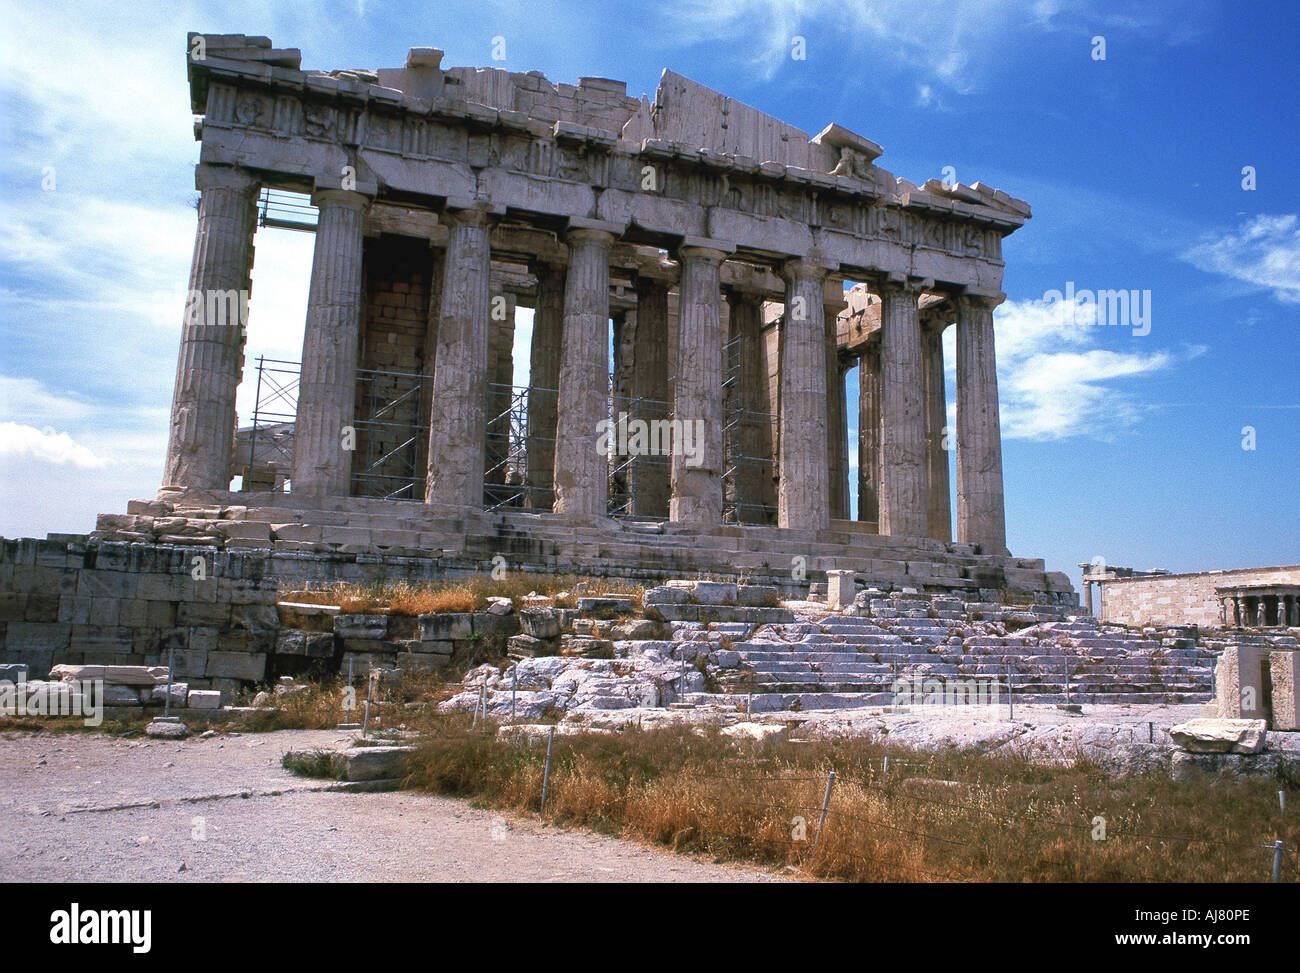 the situation of athens in the 5th century bce Athens in the 5th to 4th century bce had an extraordinary system of government: democracy under this system, all male citizens had equal political rights, freedom of speech, and the opportunity to participate directly in the political arena.